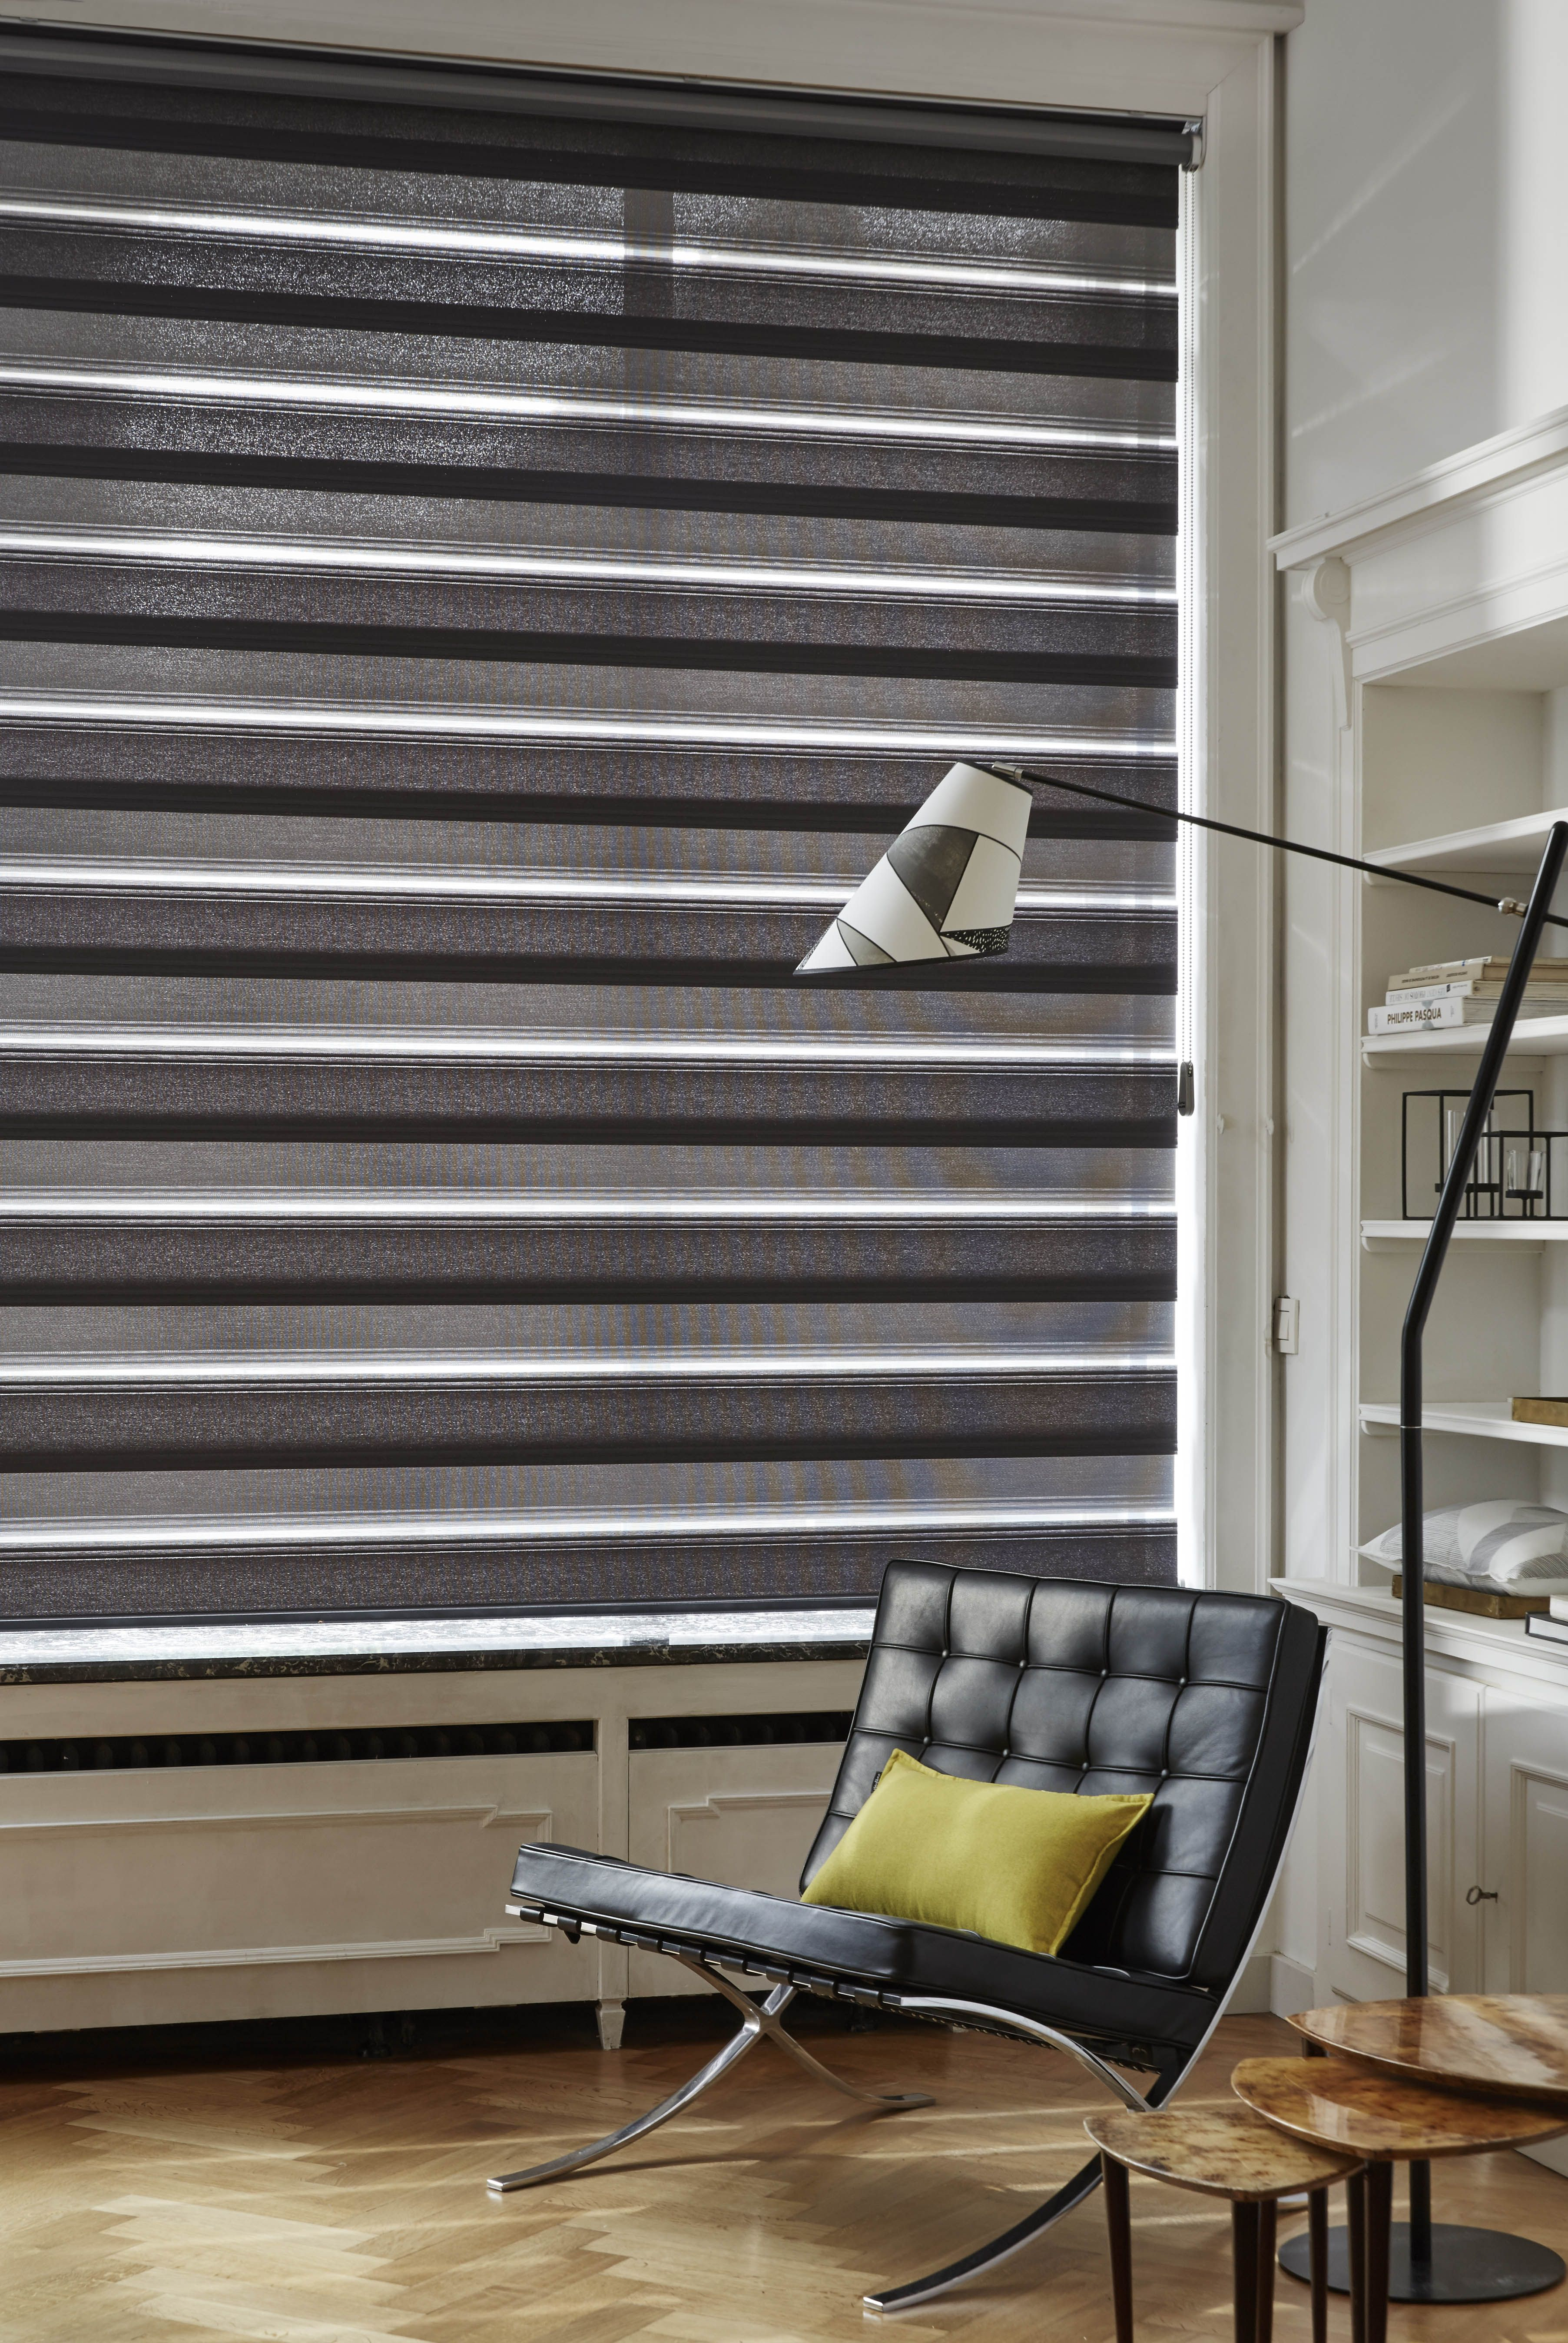 chez vous | Curtain ideas and Window